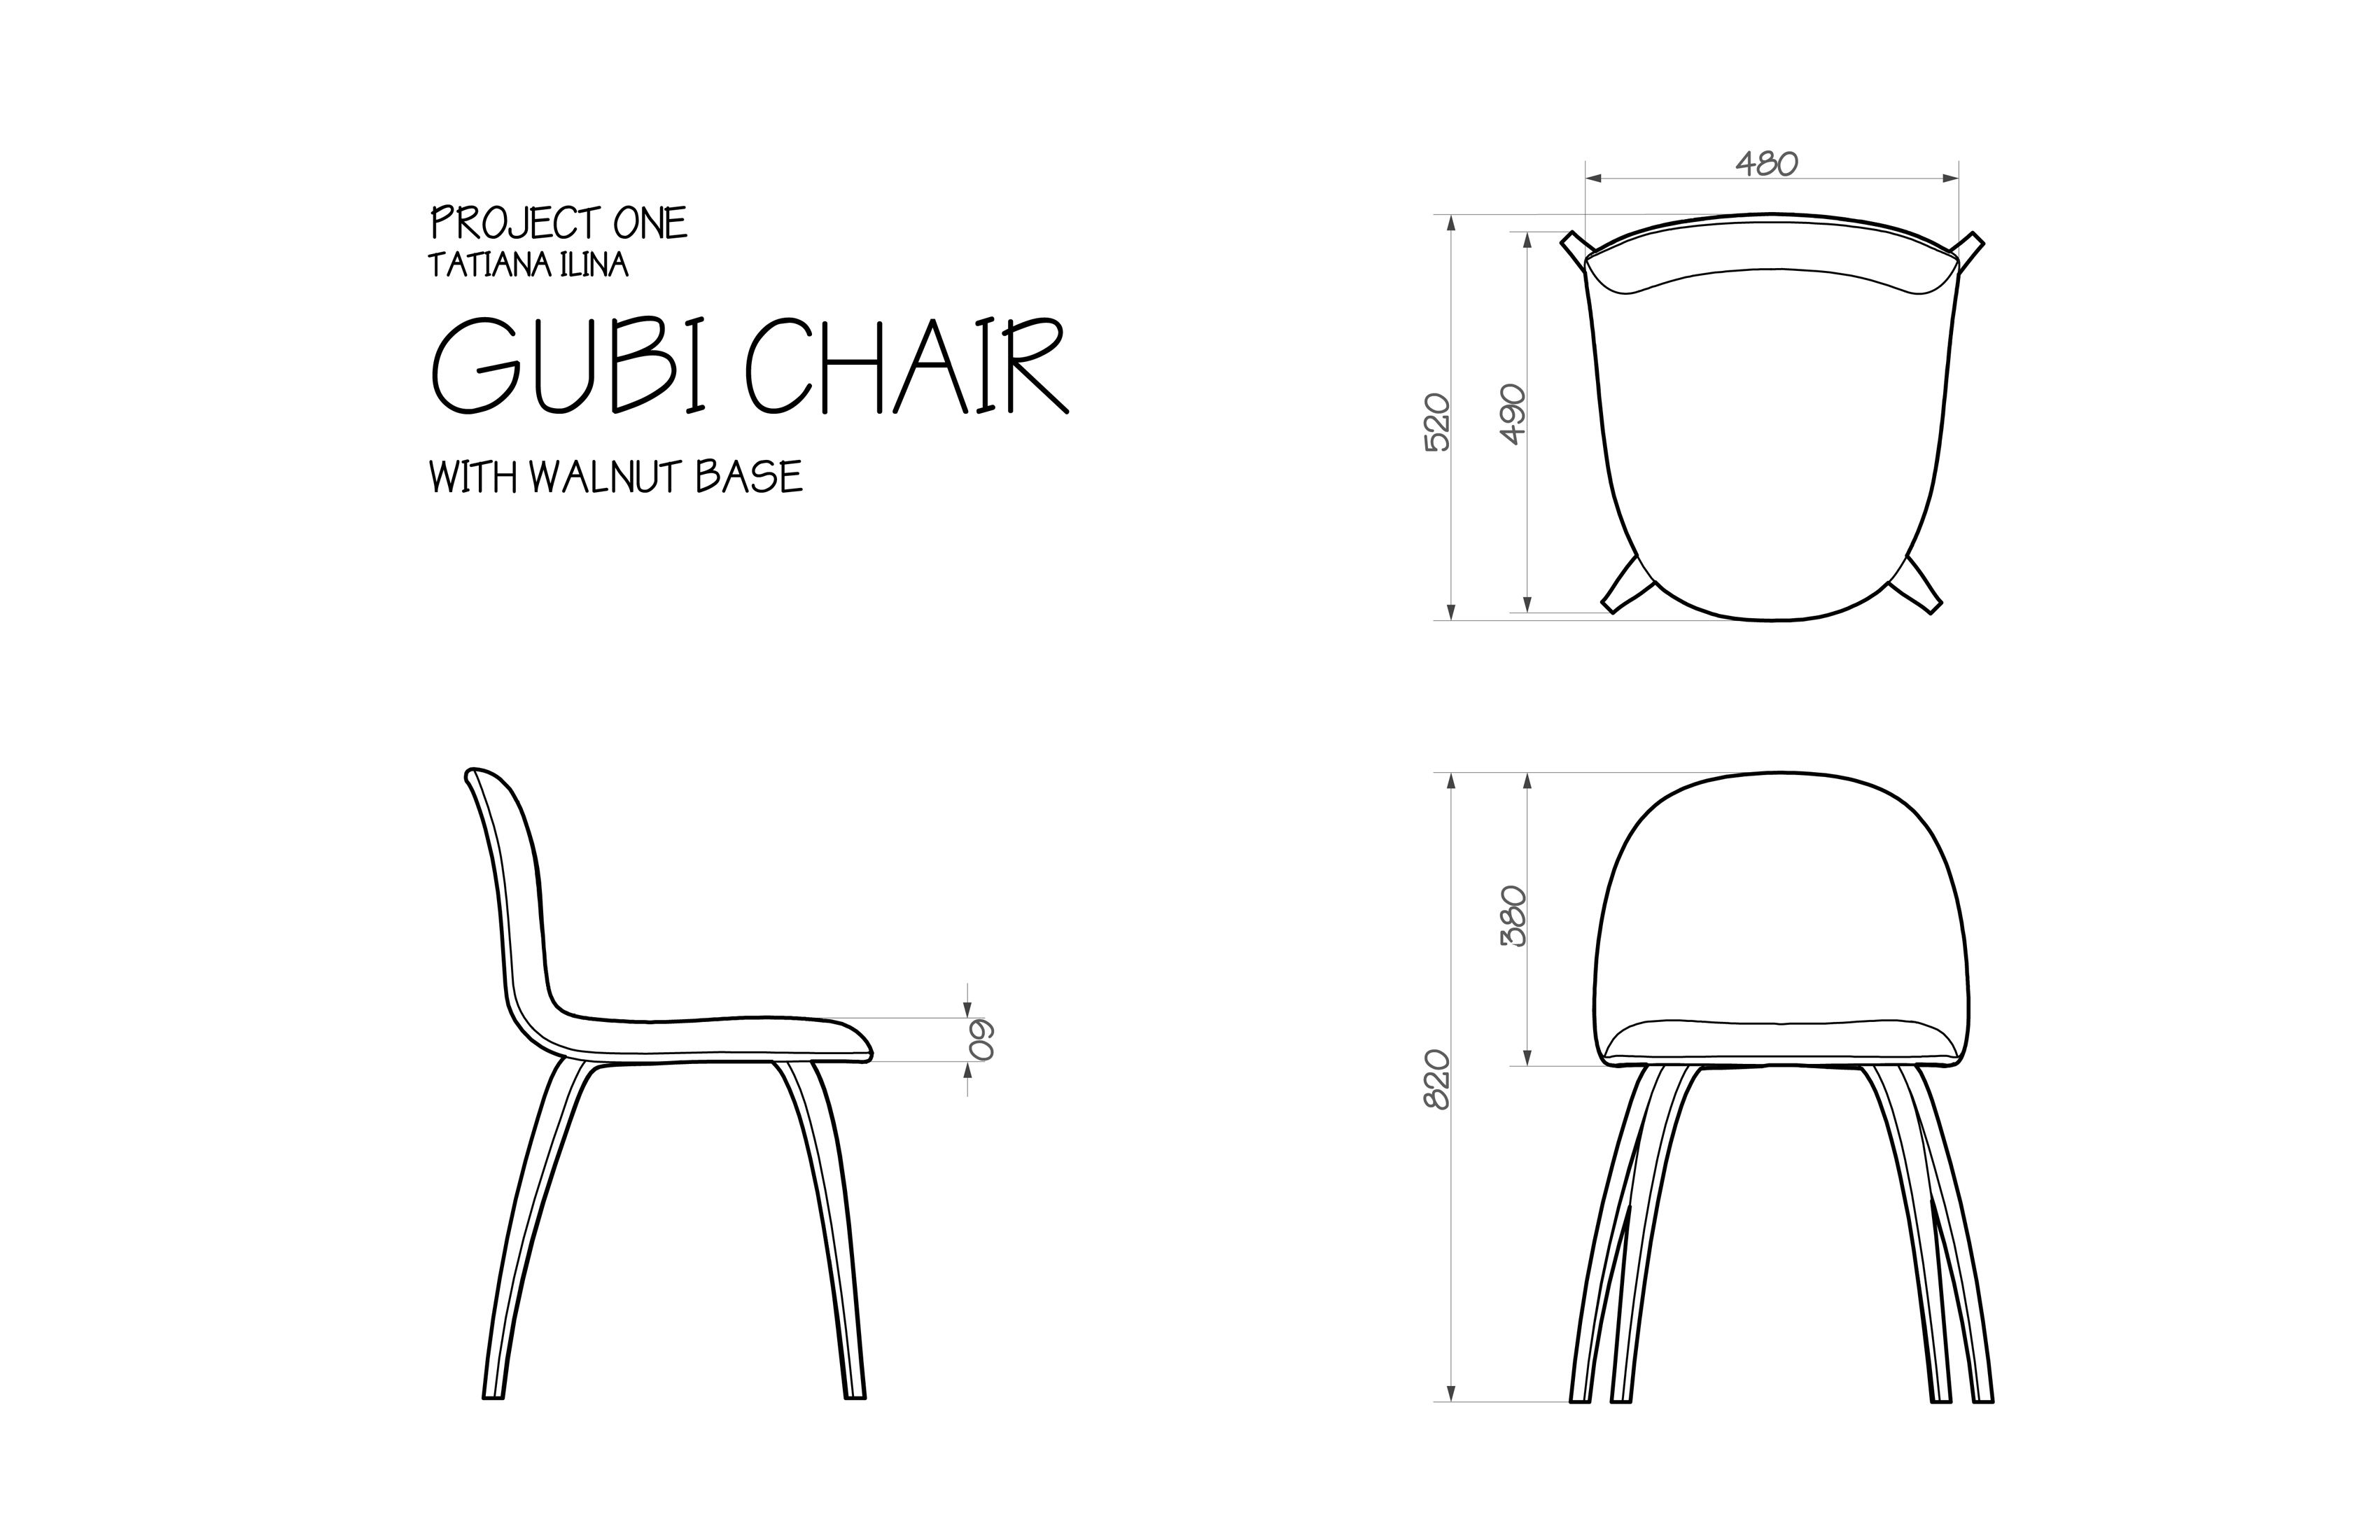 Eames Chair Autocad Block 11 Jpg 34002200 Chair Design Pinterest Drawings